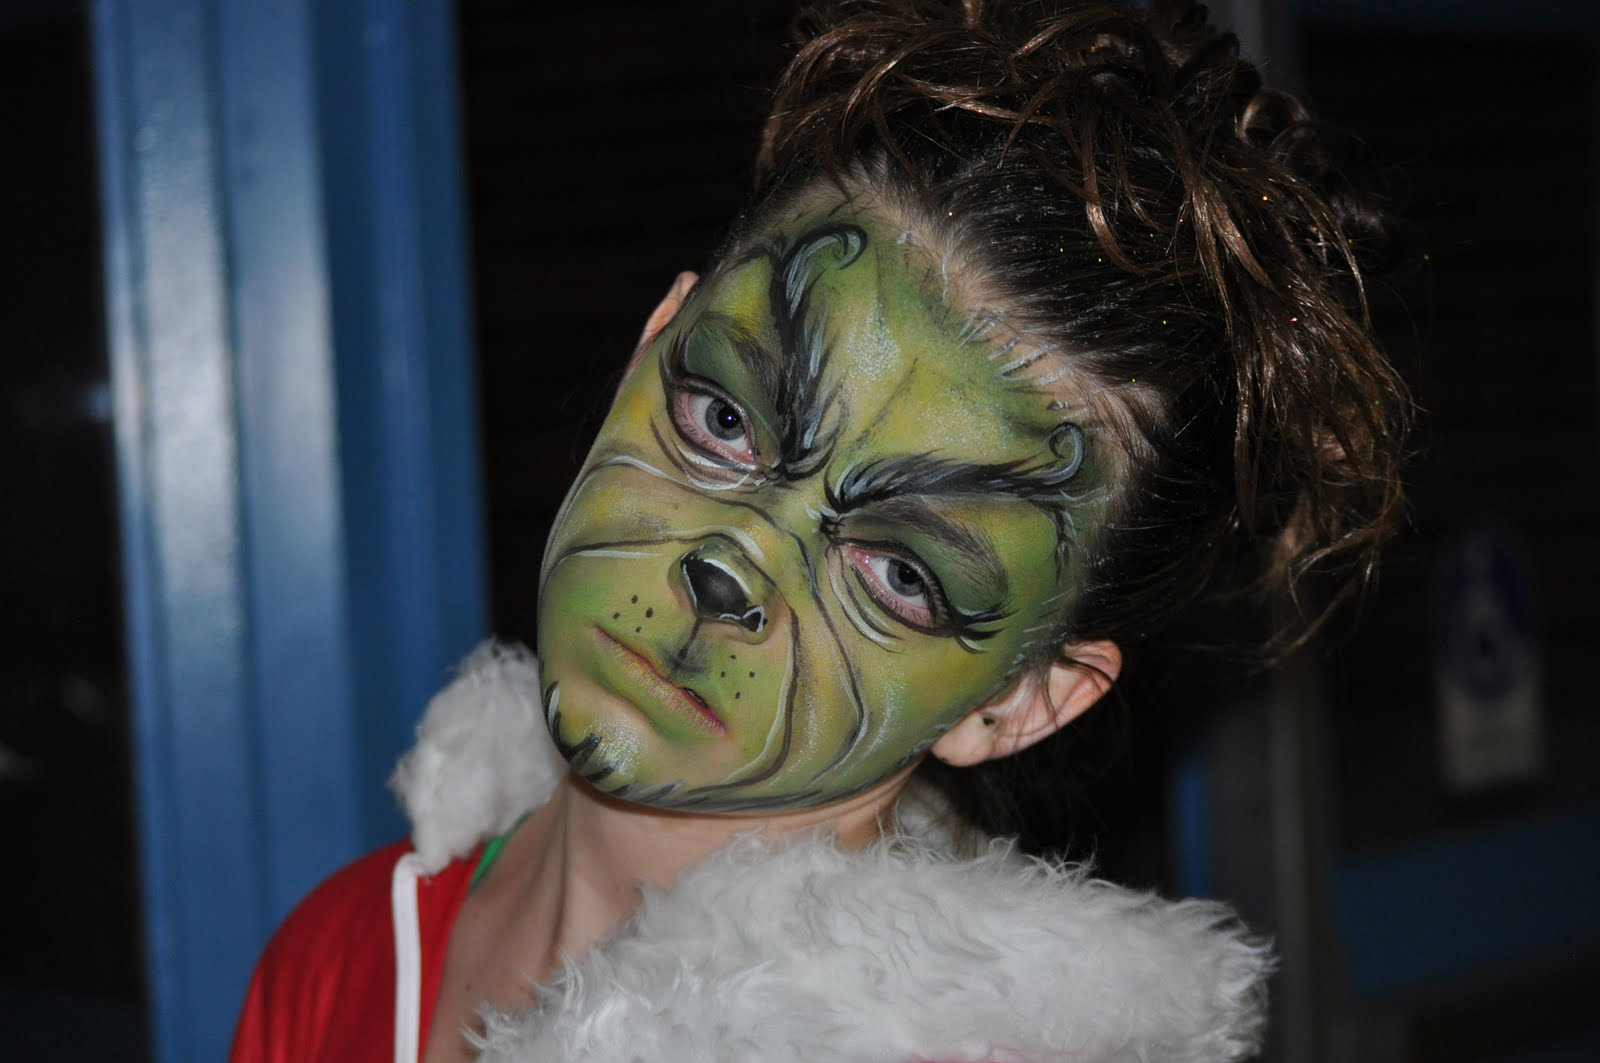 MOORE FAMILY BLOG: Mikayla as the Grinch Jim Carrey Grinch Makeup